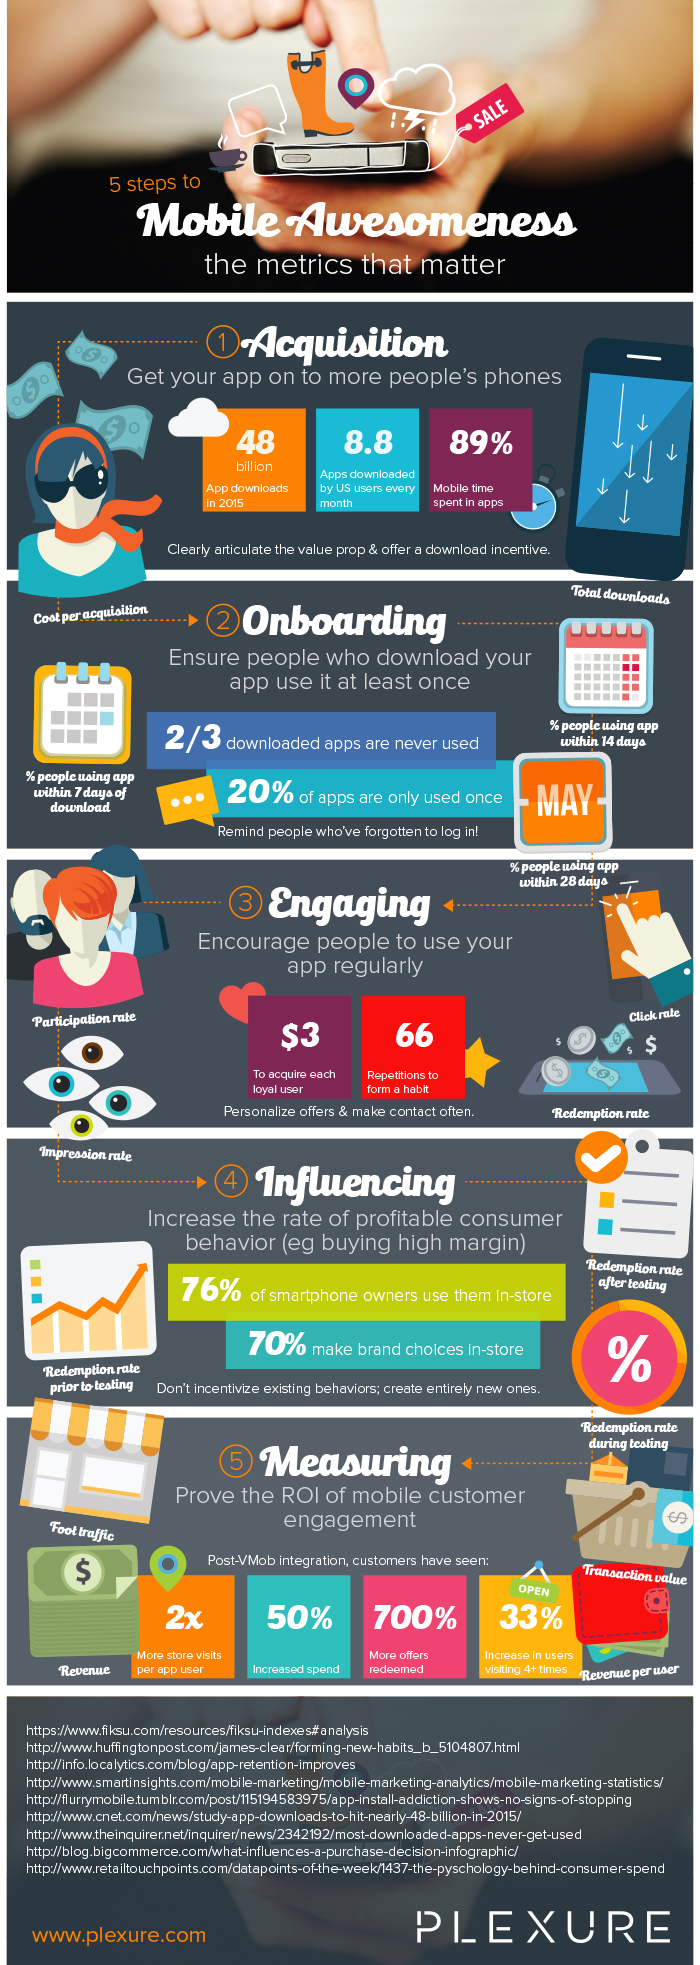 Mobile awesomeness infographic